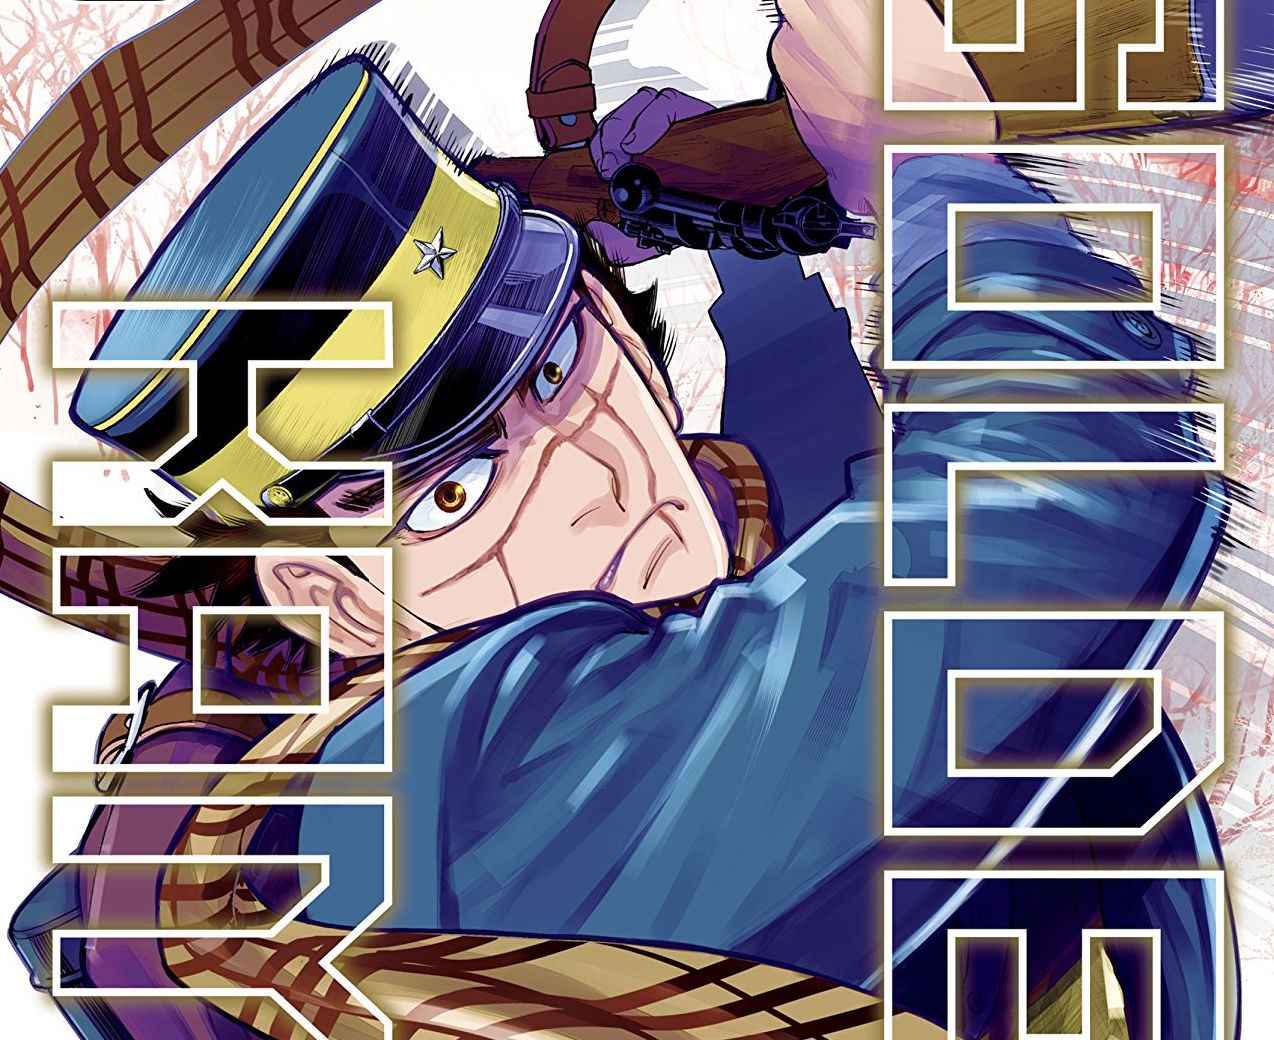 Golden Kamuy, Vol. 10 Review